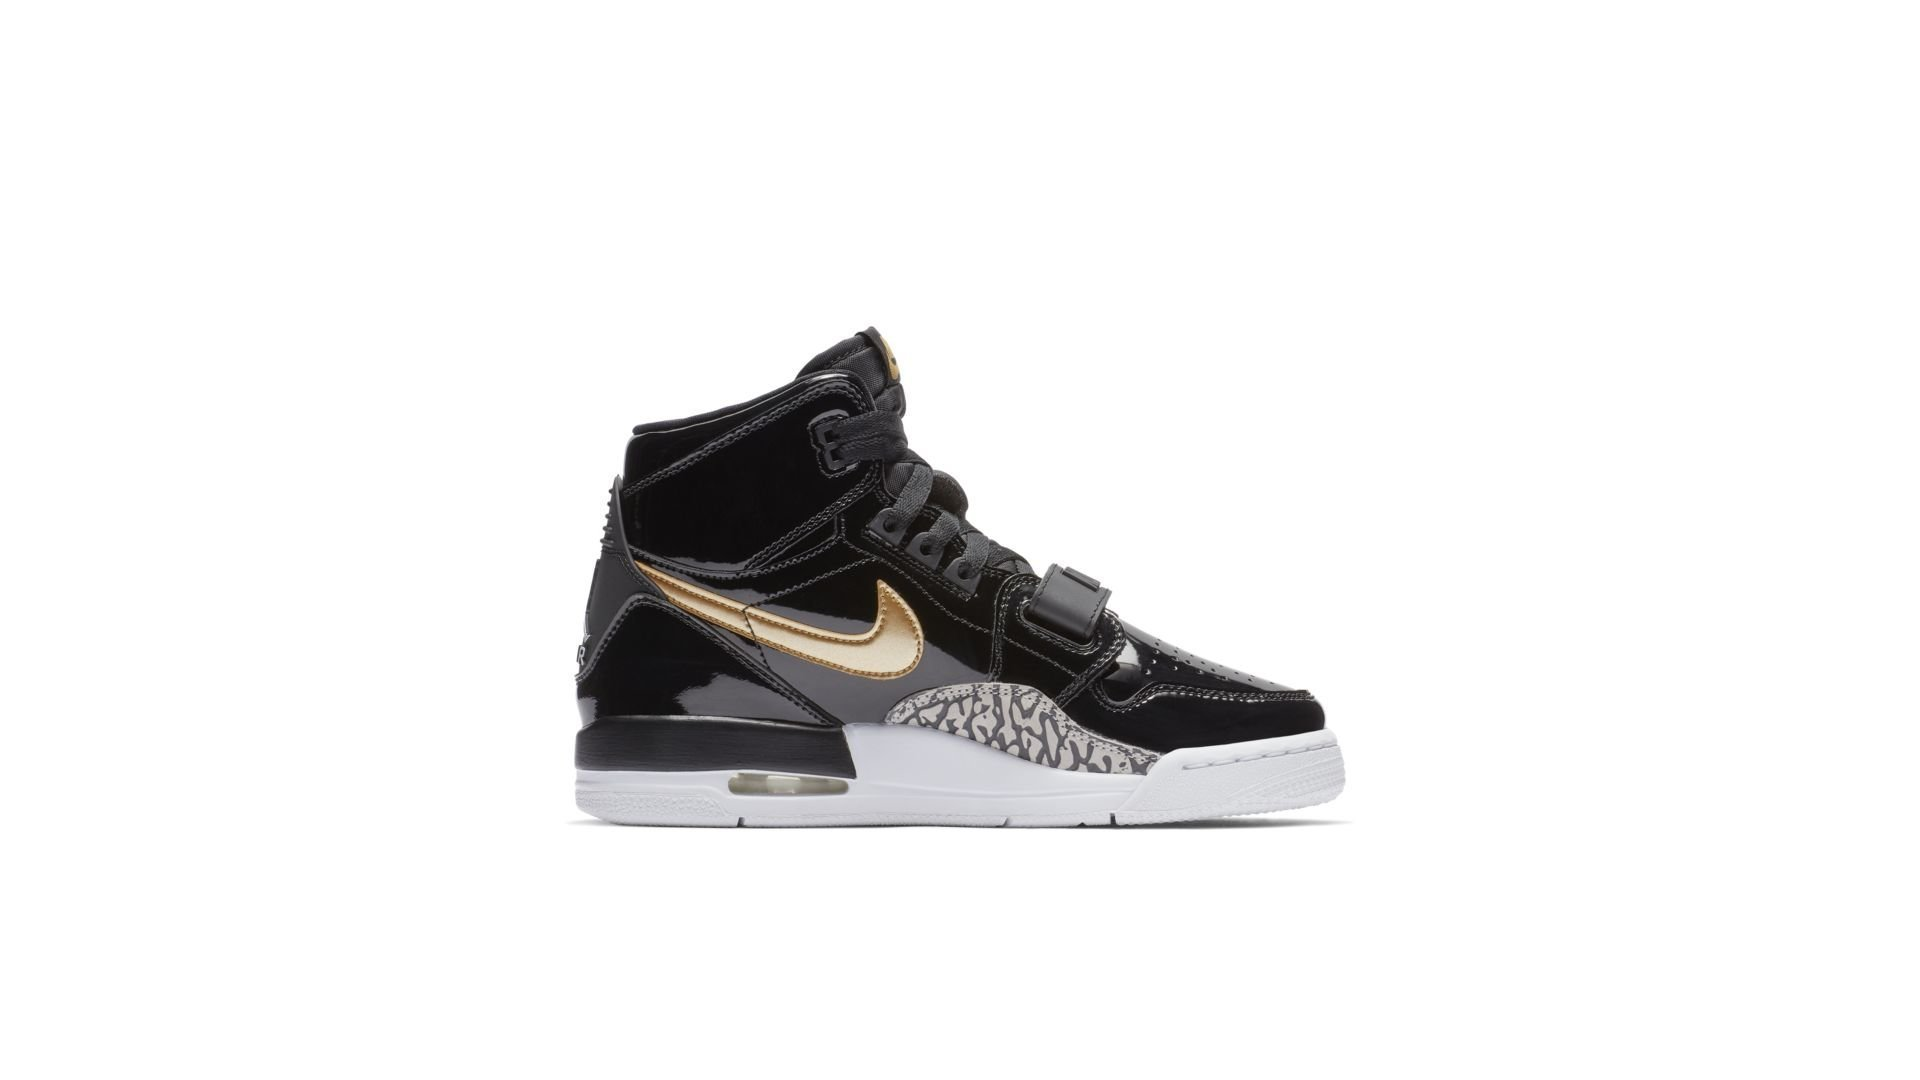 Jordan Legacy 312 Black Gold Patent (GS) (AT4040-007)